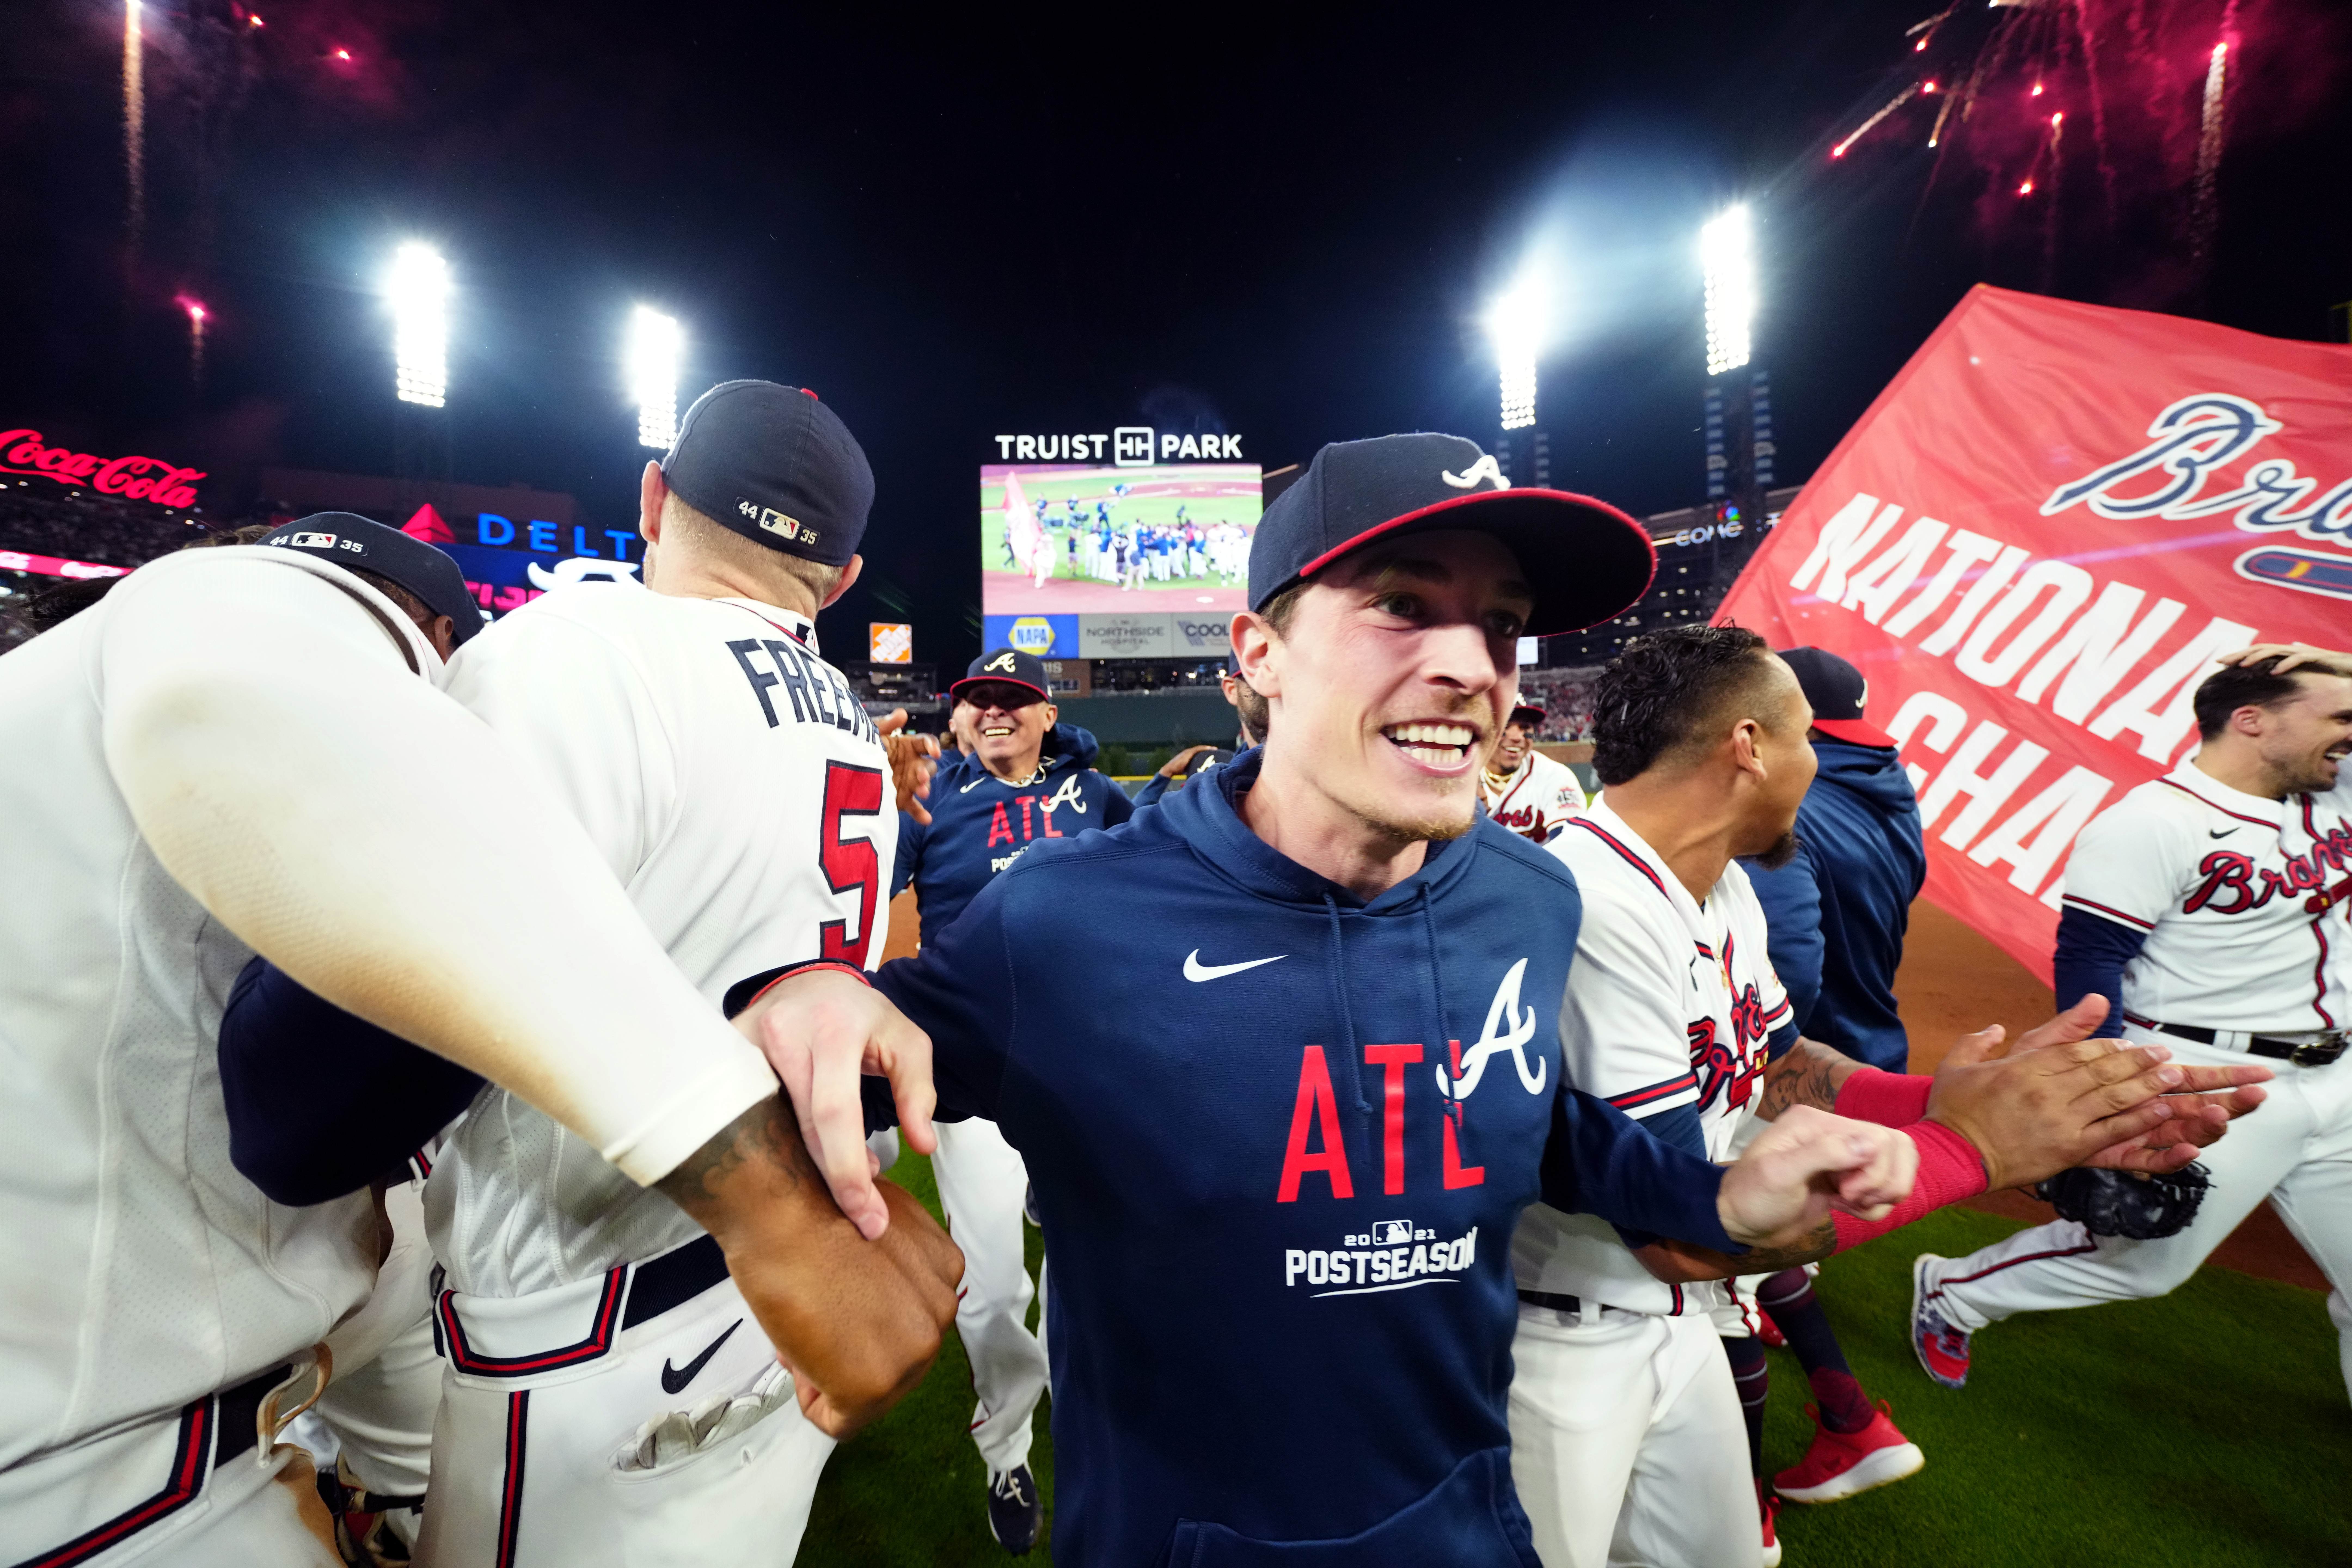 Max Fried #54 of the Atlanta Braves celebrates on the field with teammates after the Braves defeated the Los Angeles Dodgers in Game 6 of the NLCS to advance to the World Series at Truist Park on Saturday, October 23, 2021 in Atlanta, Georgia.